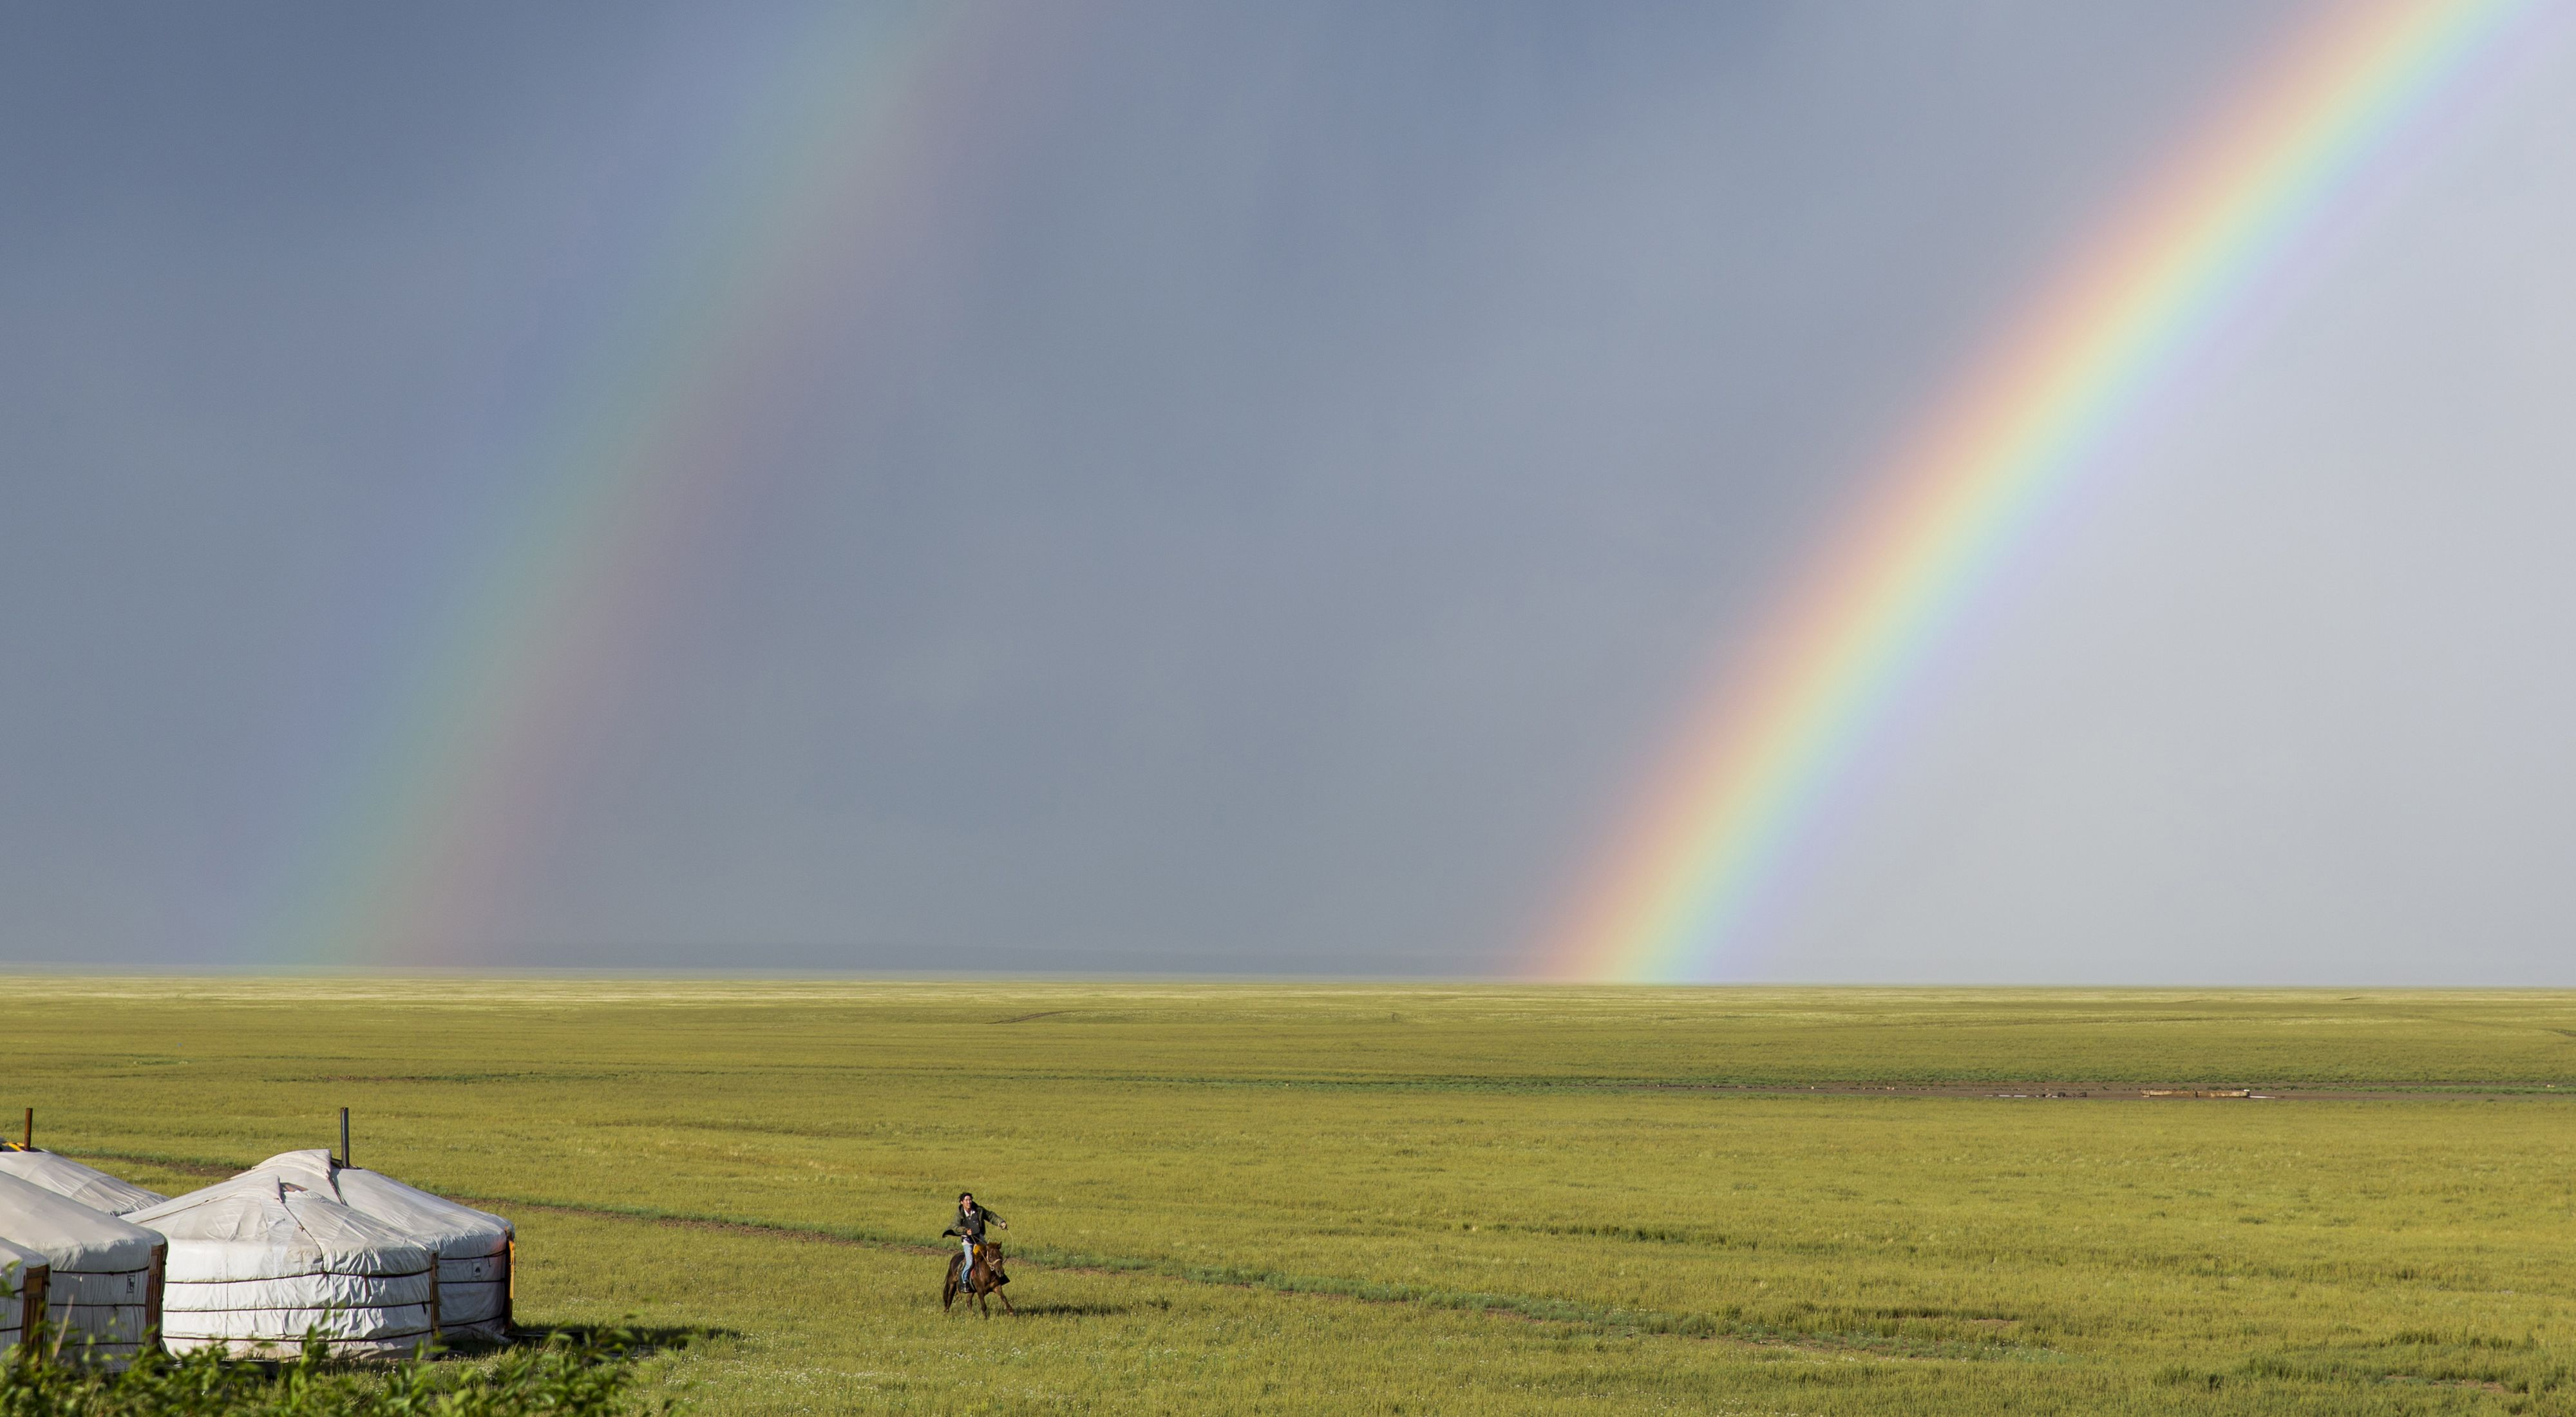 A person riding a horse past gers and a double rainbow in the South Gobi Desert, Mongolia.